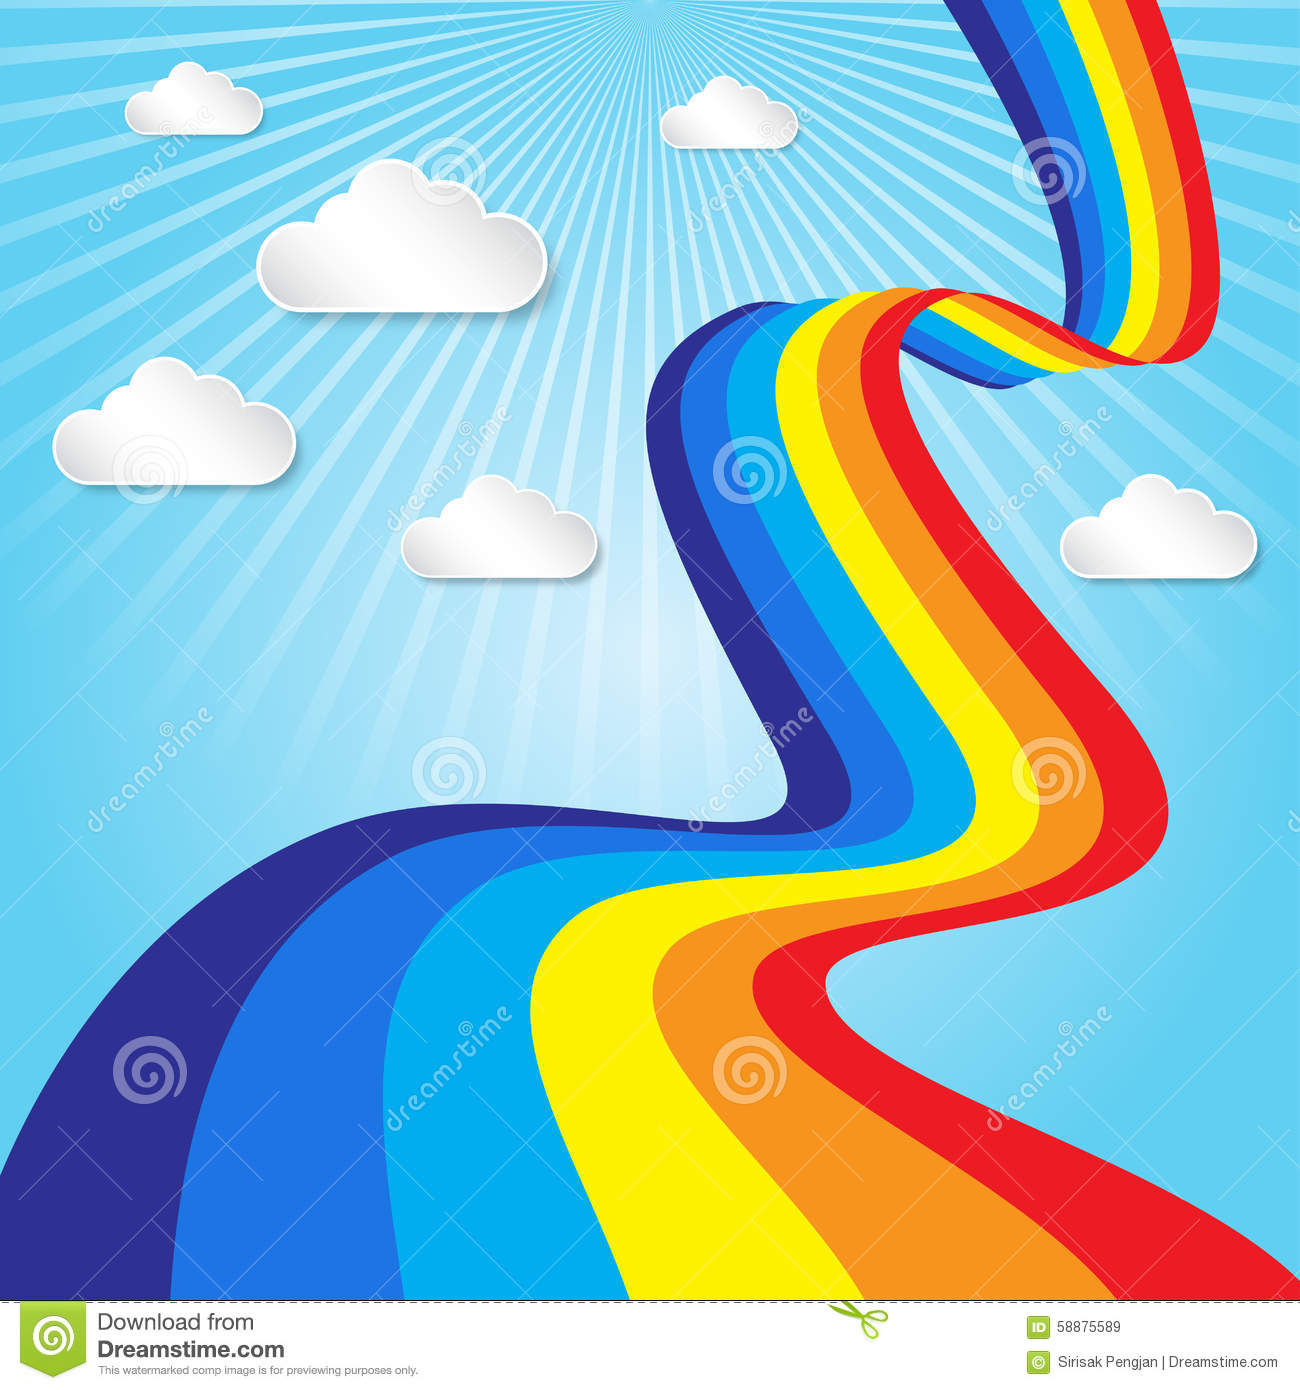 rainbow sky with clouds cartoon background royalty free stock